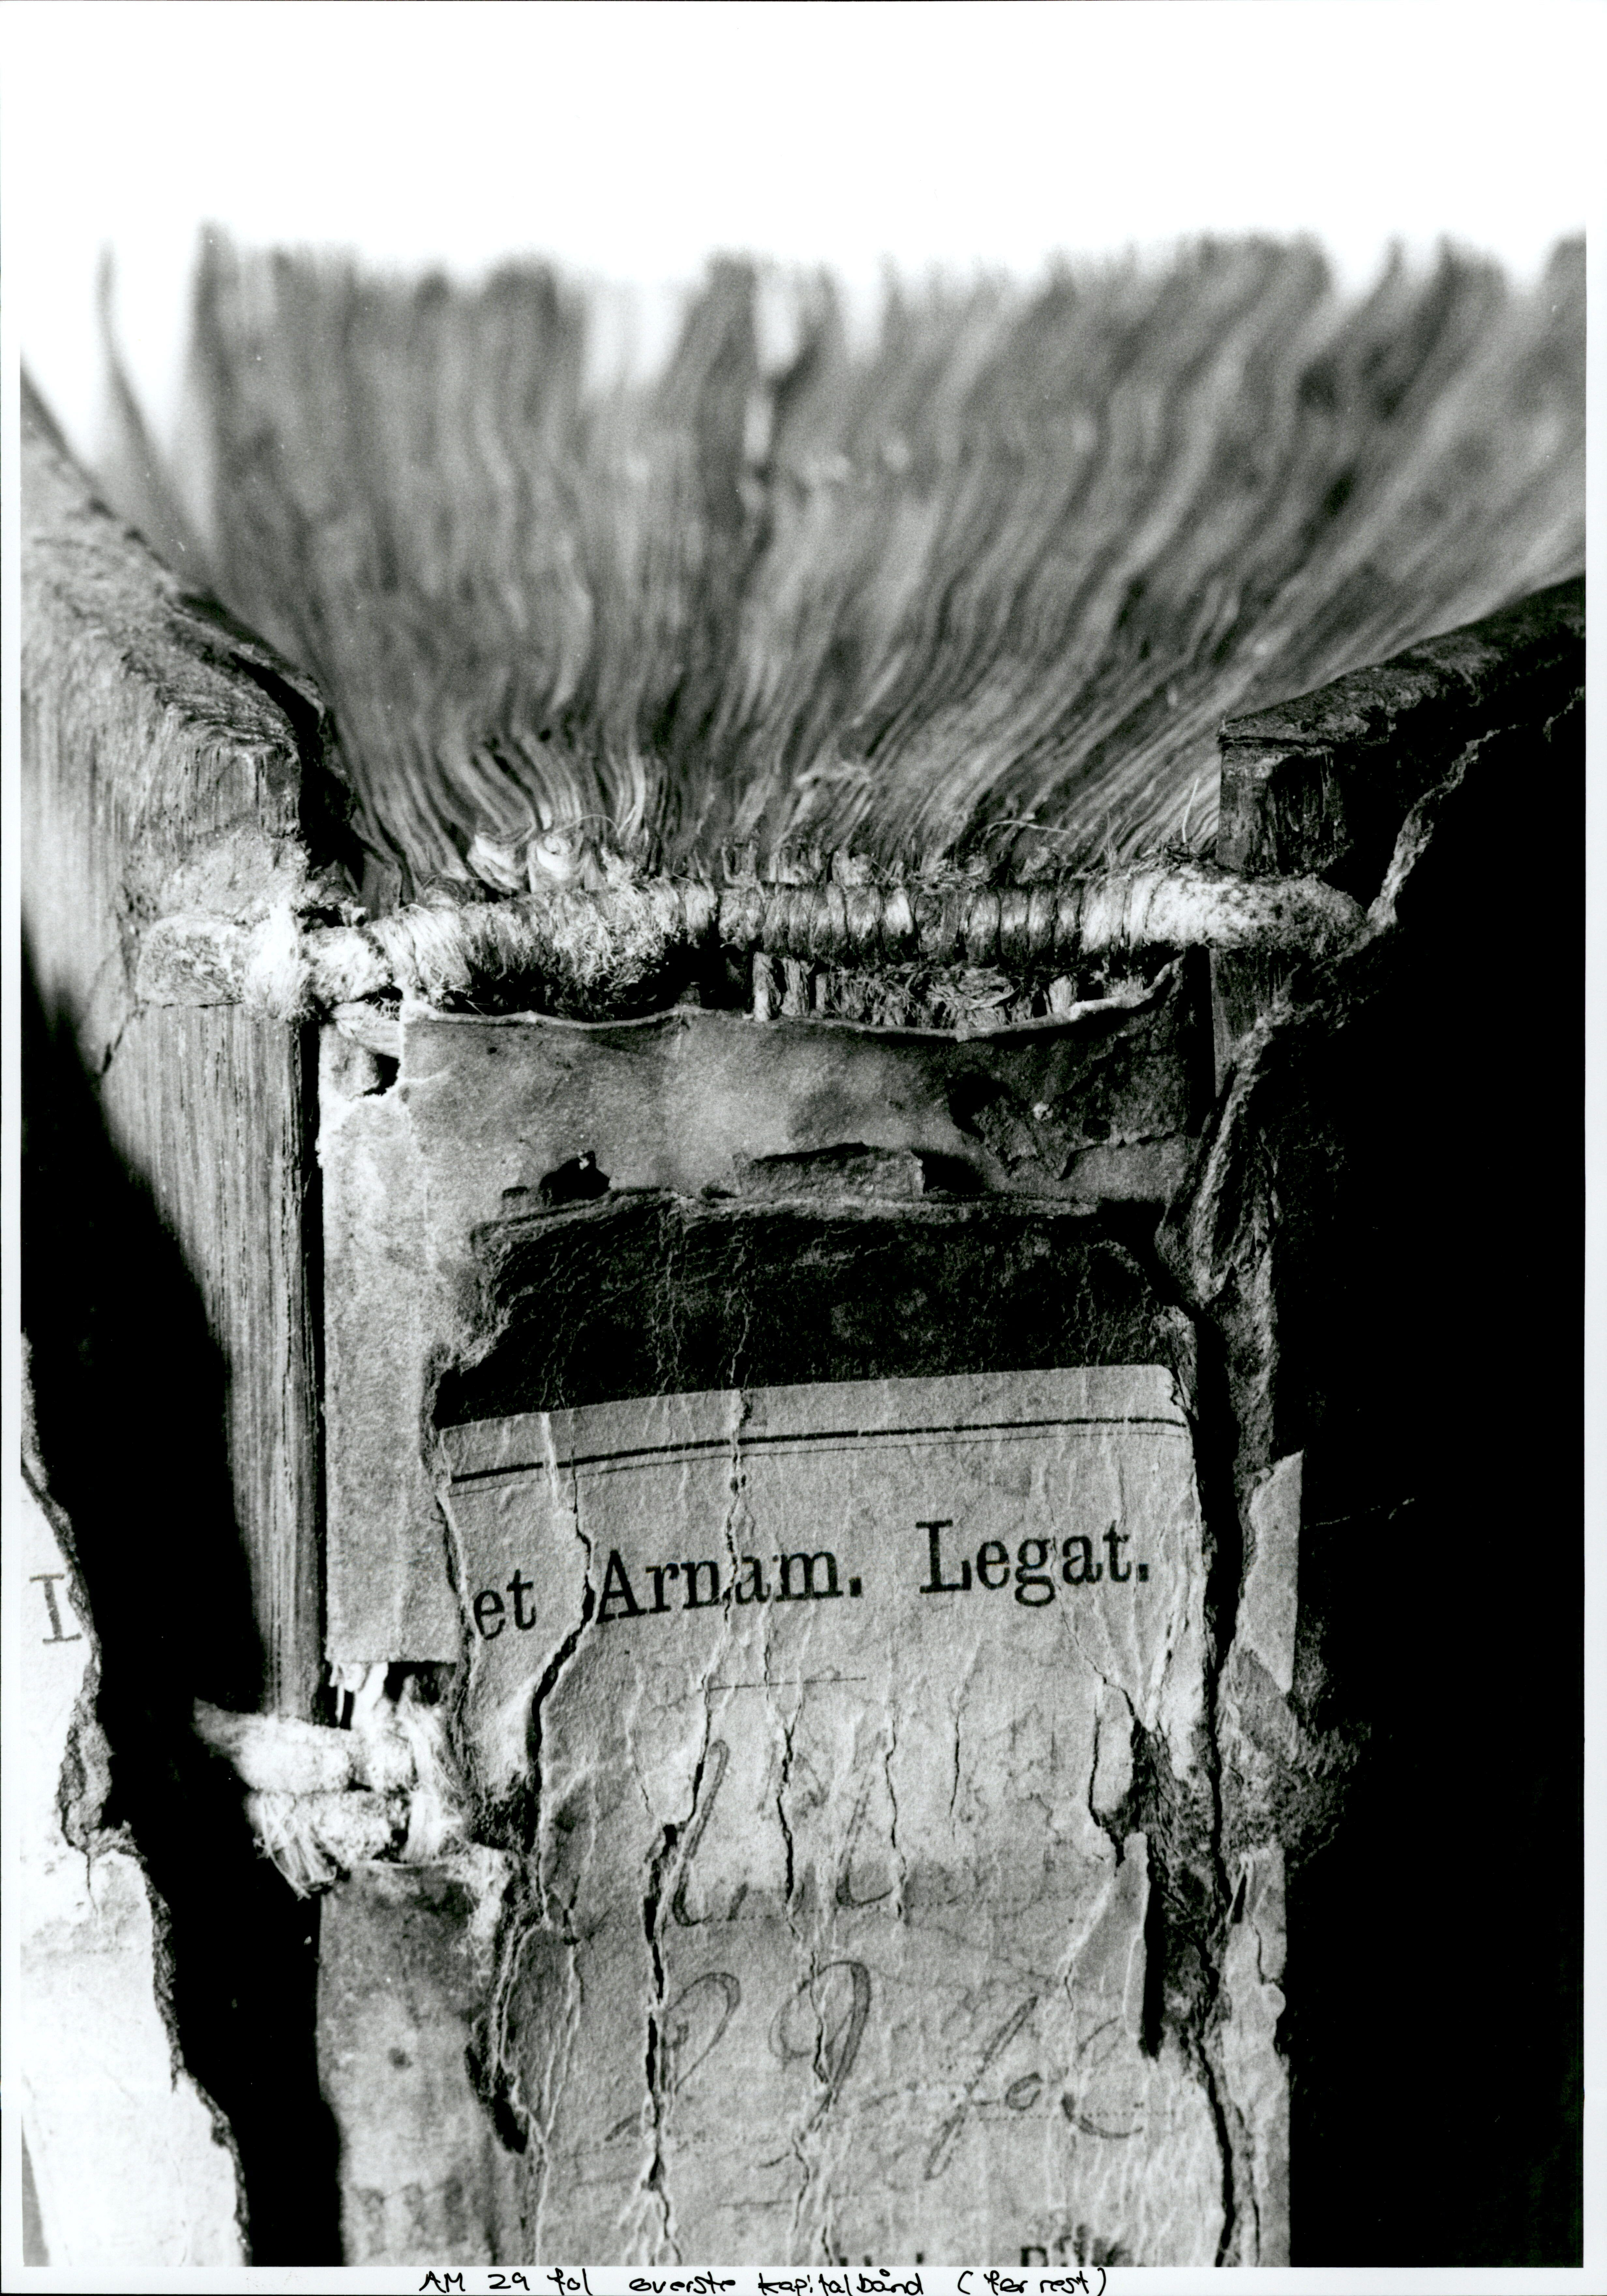 Image of book spine (Digital Collections)